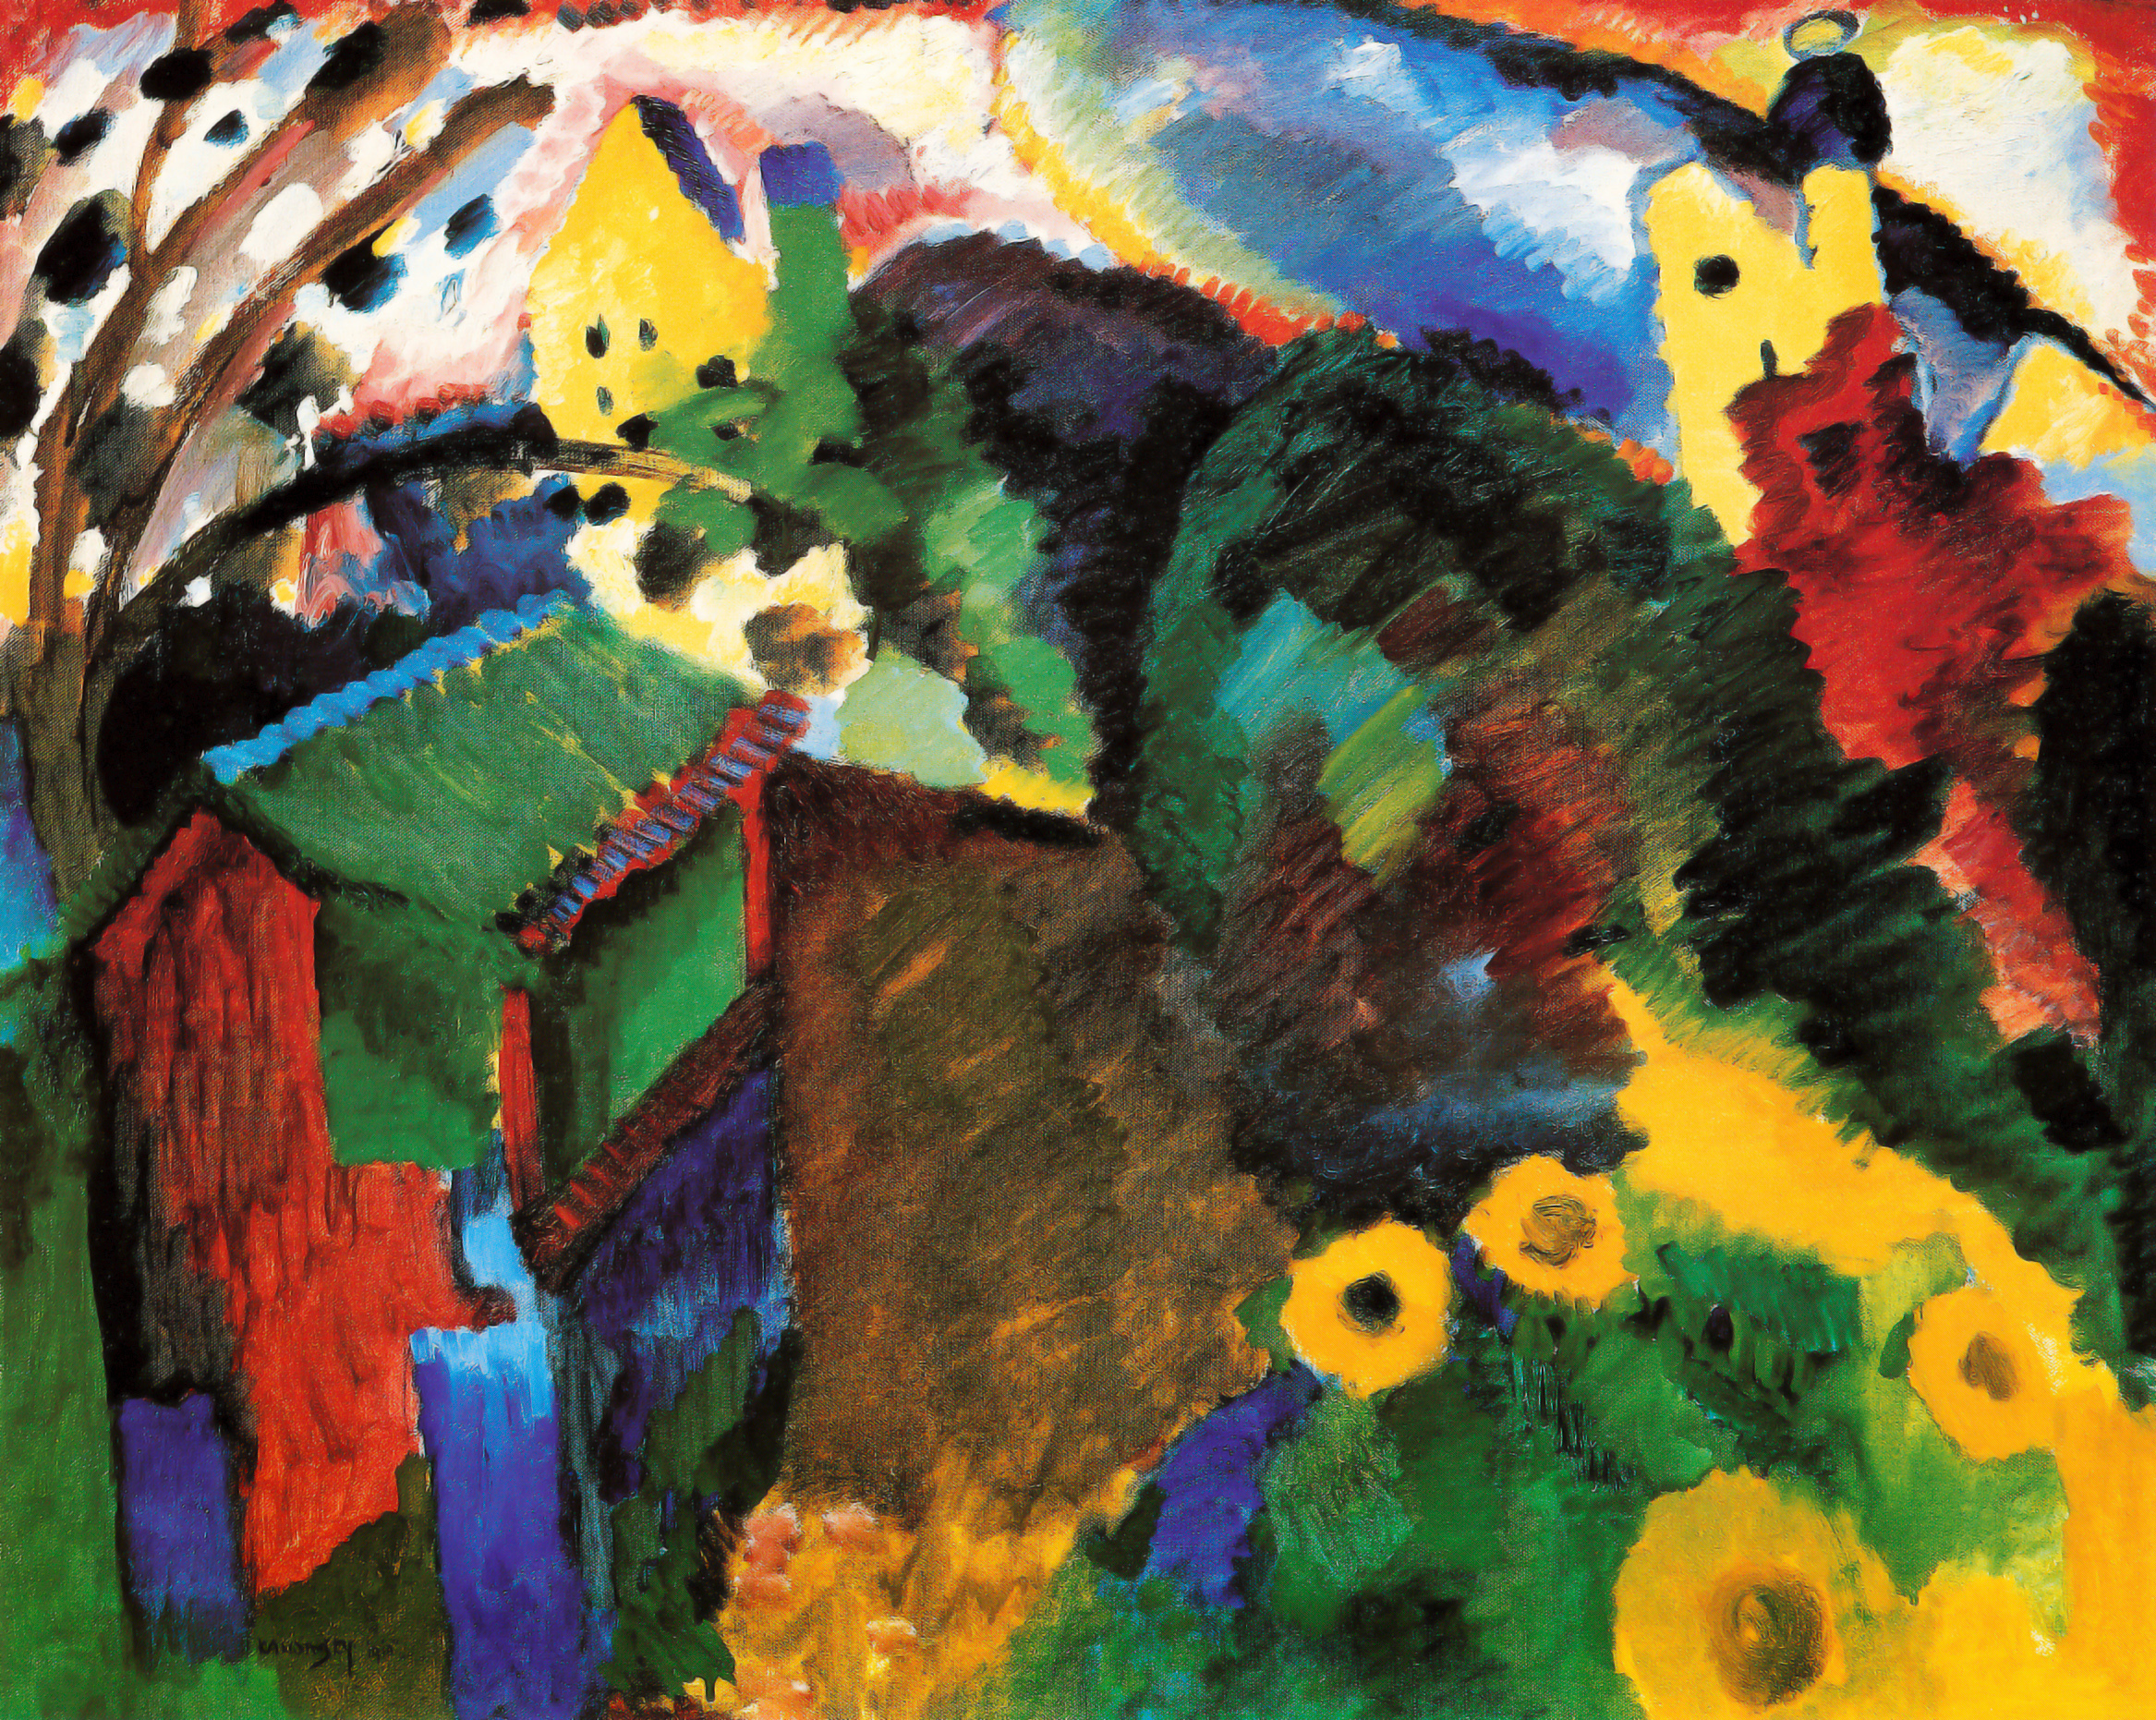 wassily kandinsky HD Wallpaper